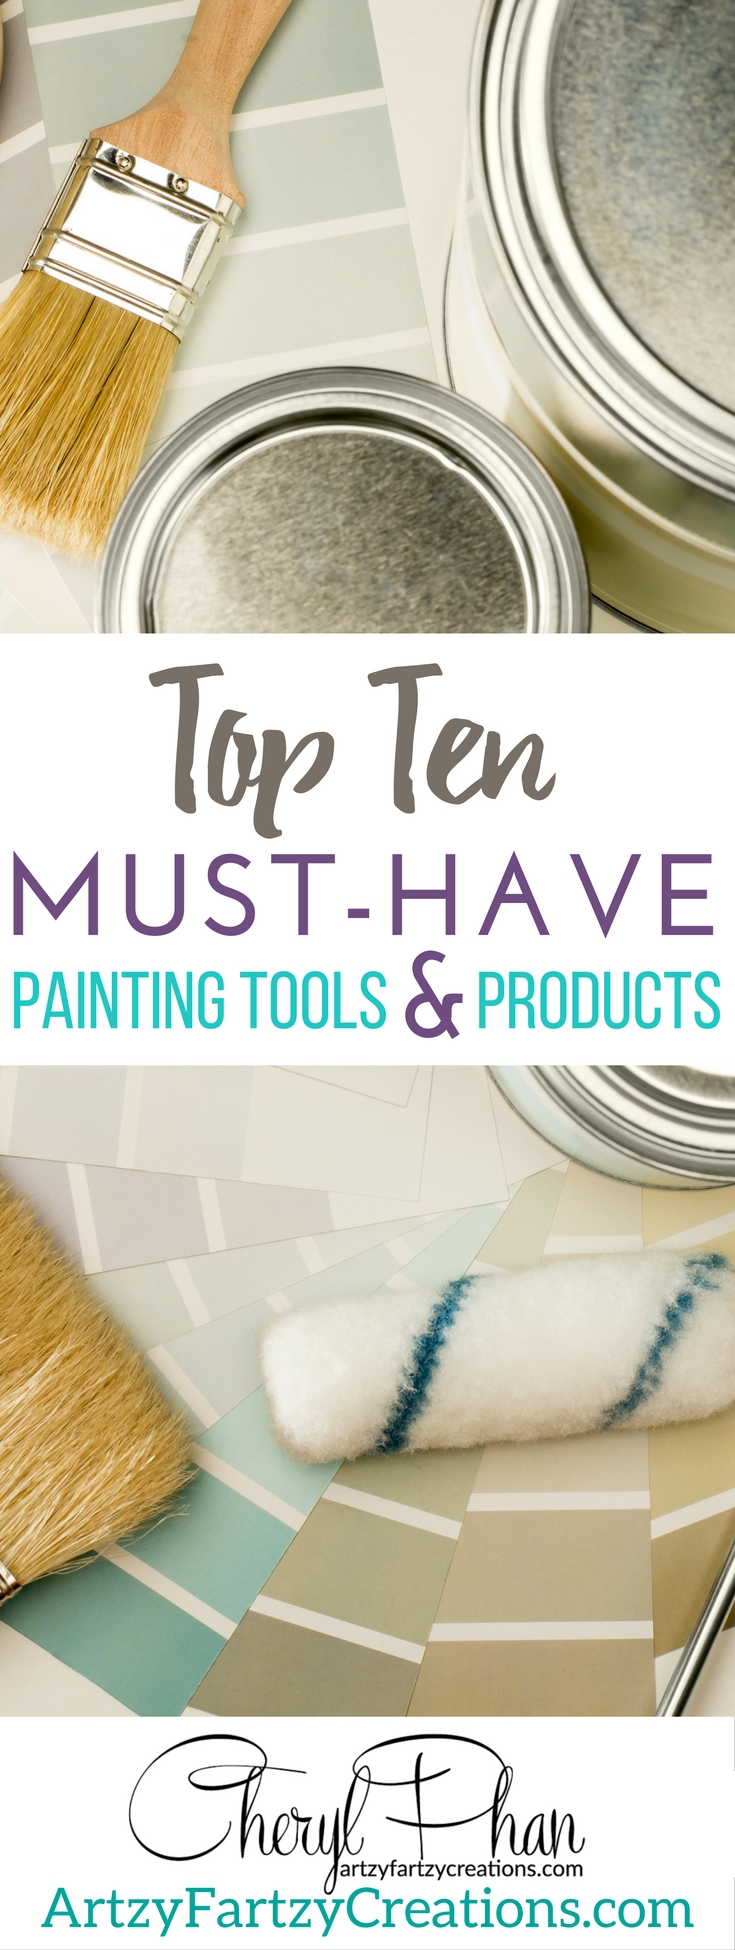 Ten Ten Painting Tools and Products   Furniture Painting Tips and Accent Wall Painting Tips by Cheryl Phan